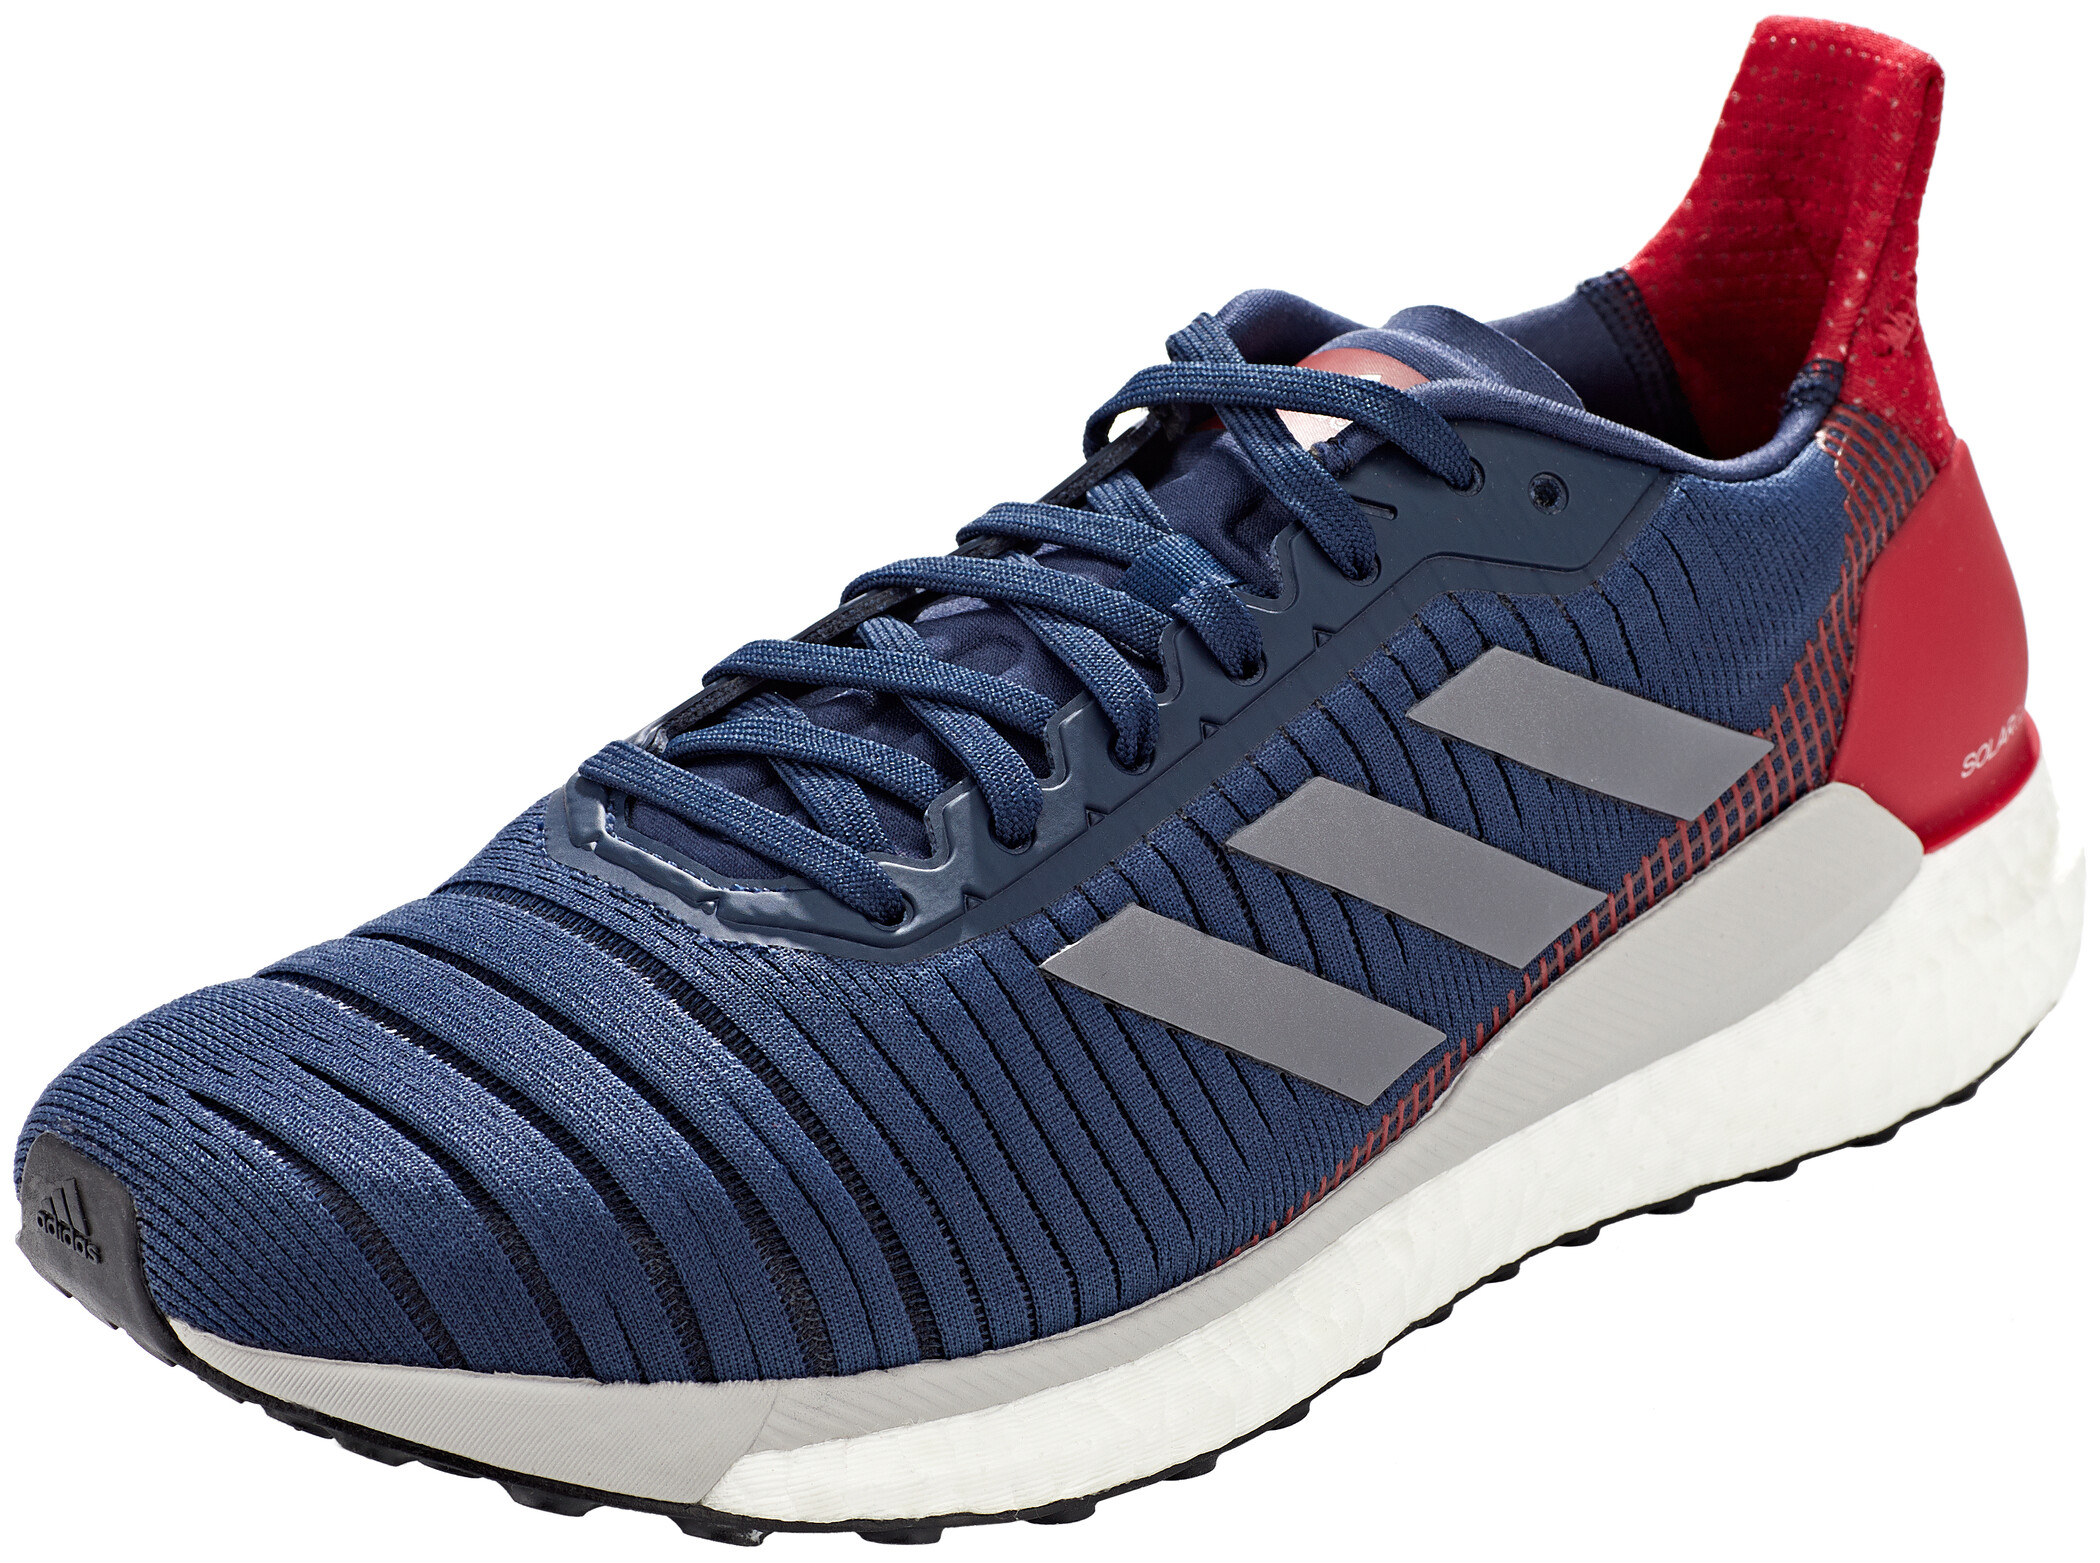 adidas Mens Solar Glide 19 Running Shoes Trainers Blue Sports Breathable